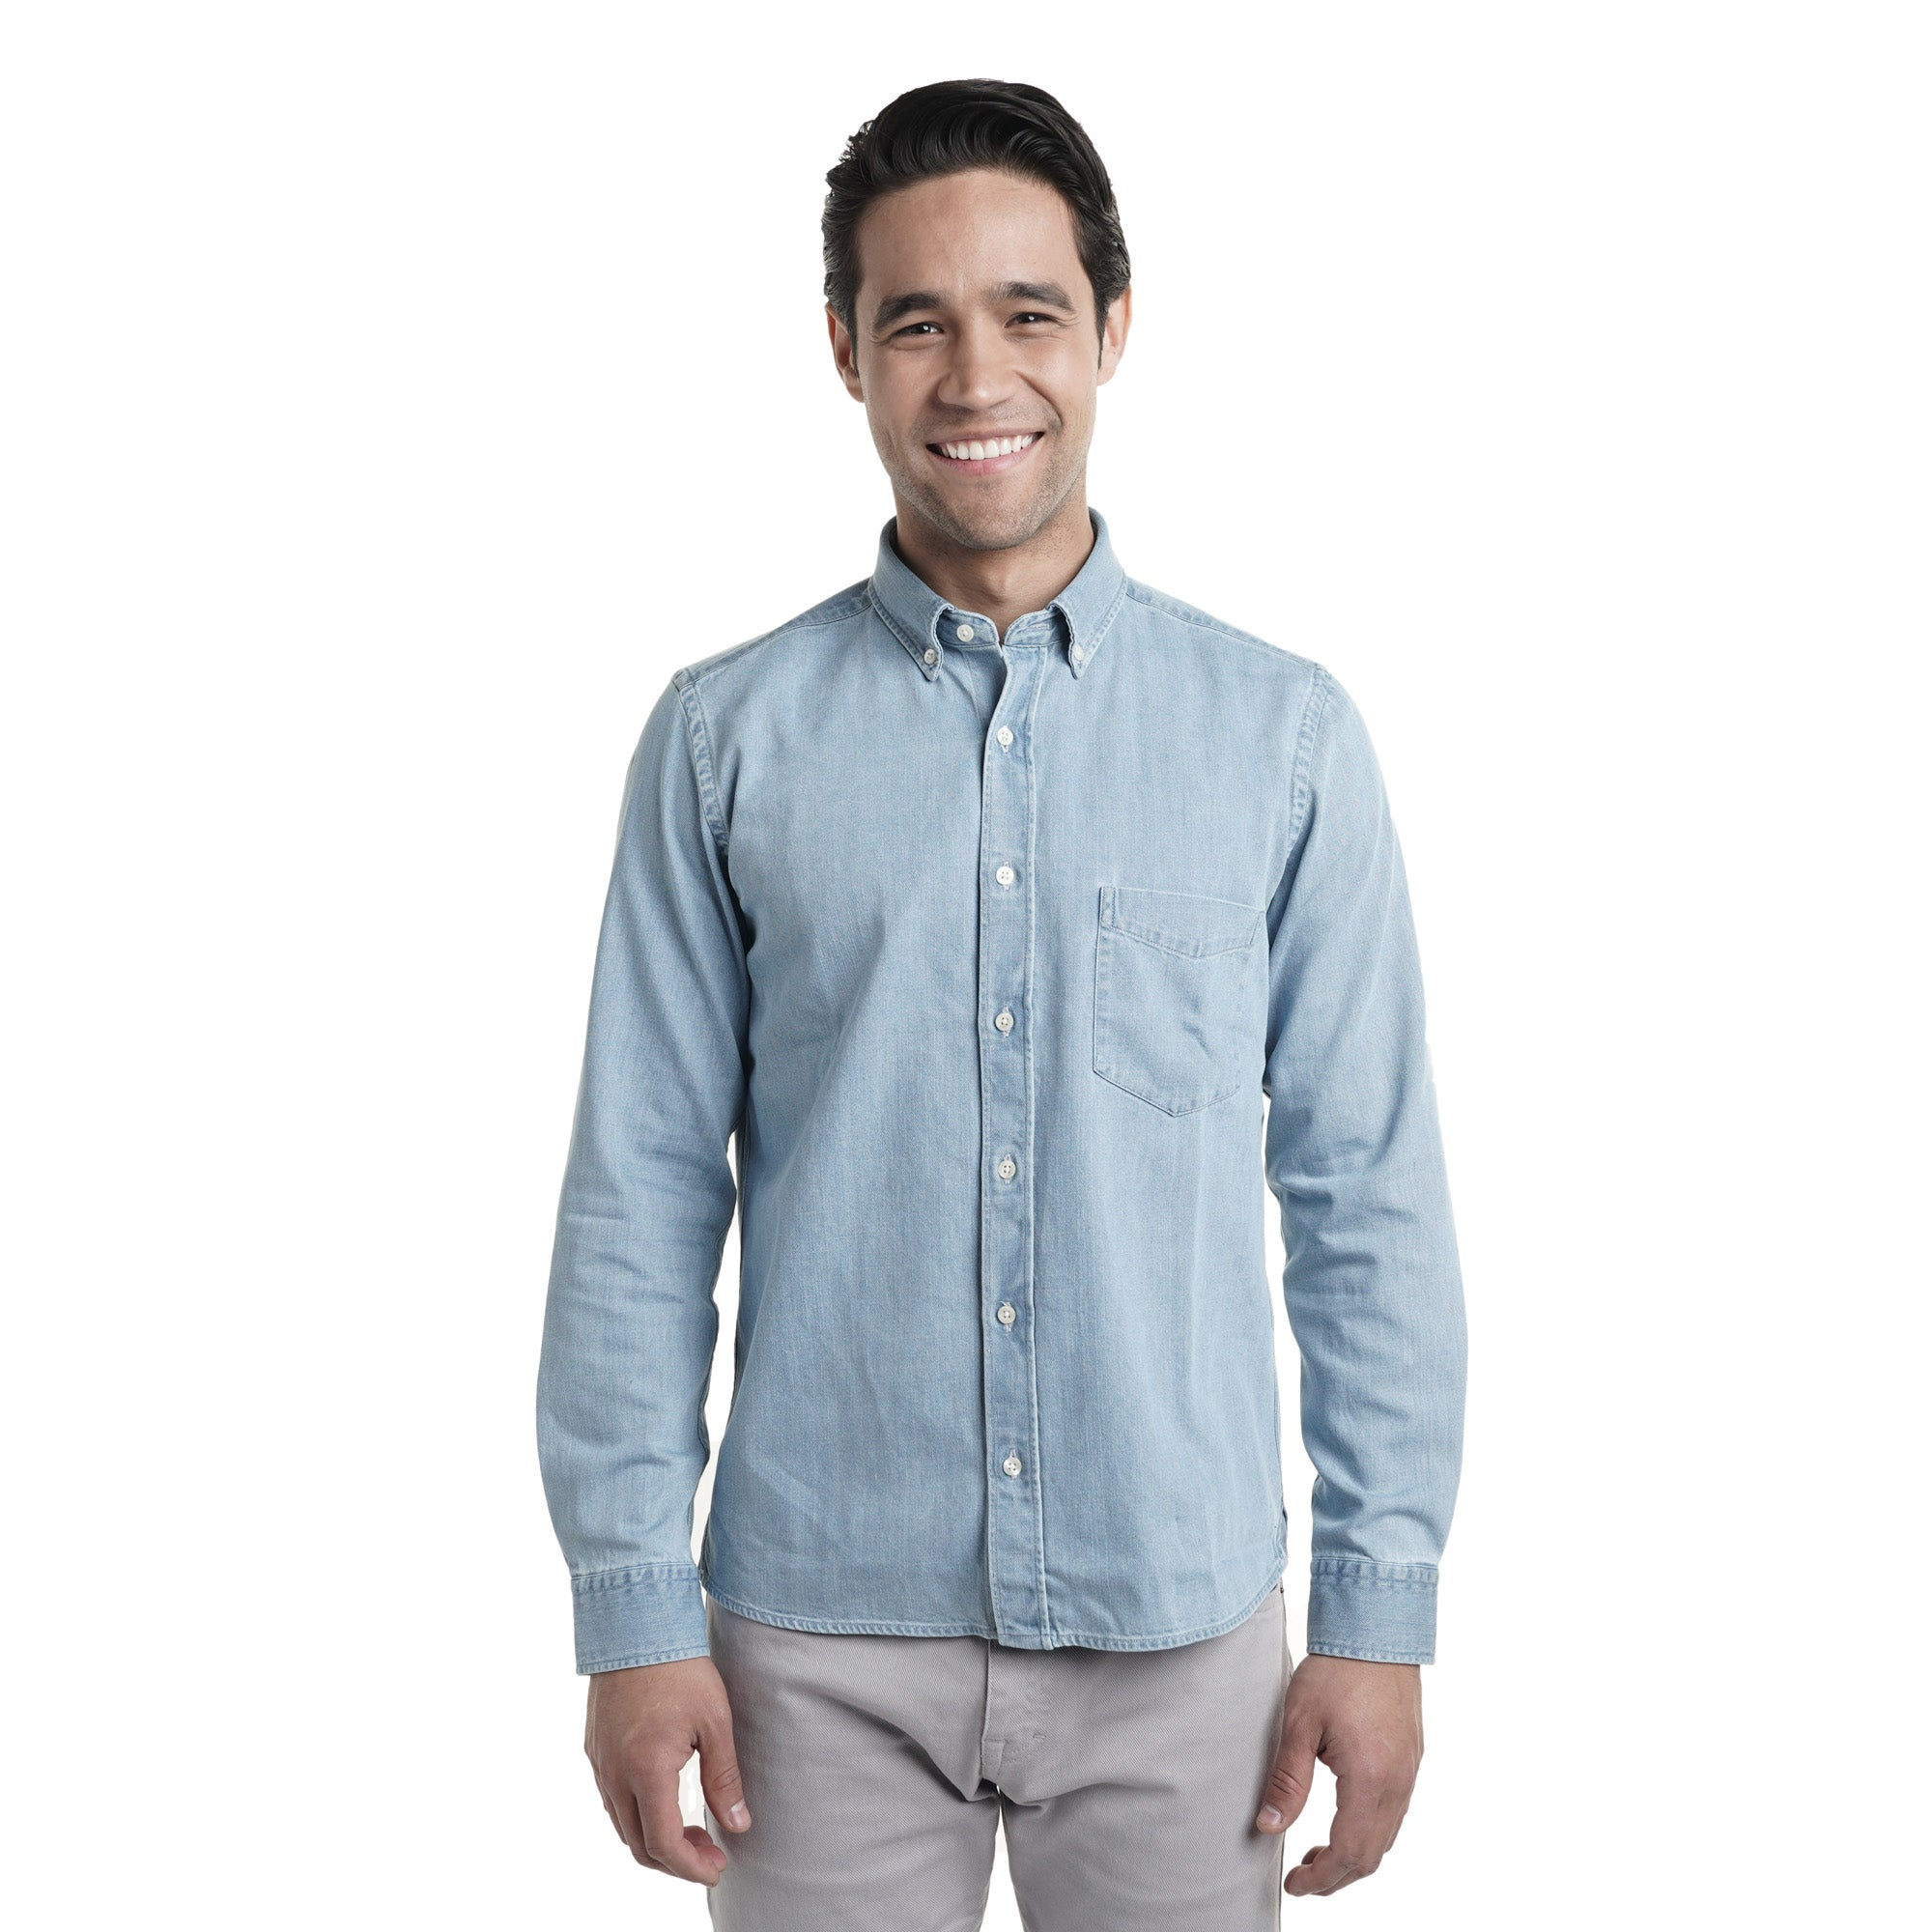 Denim Shirts - Light Wash